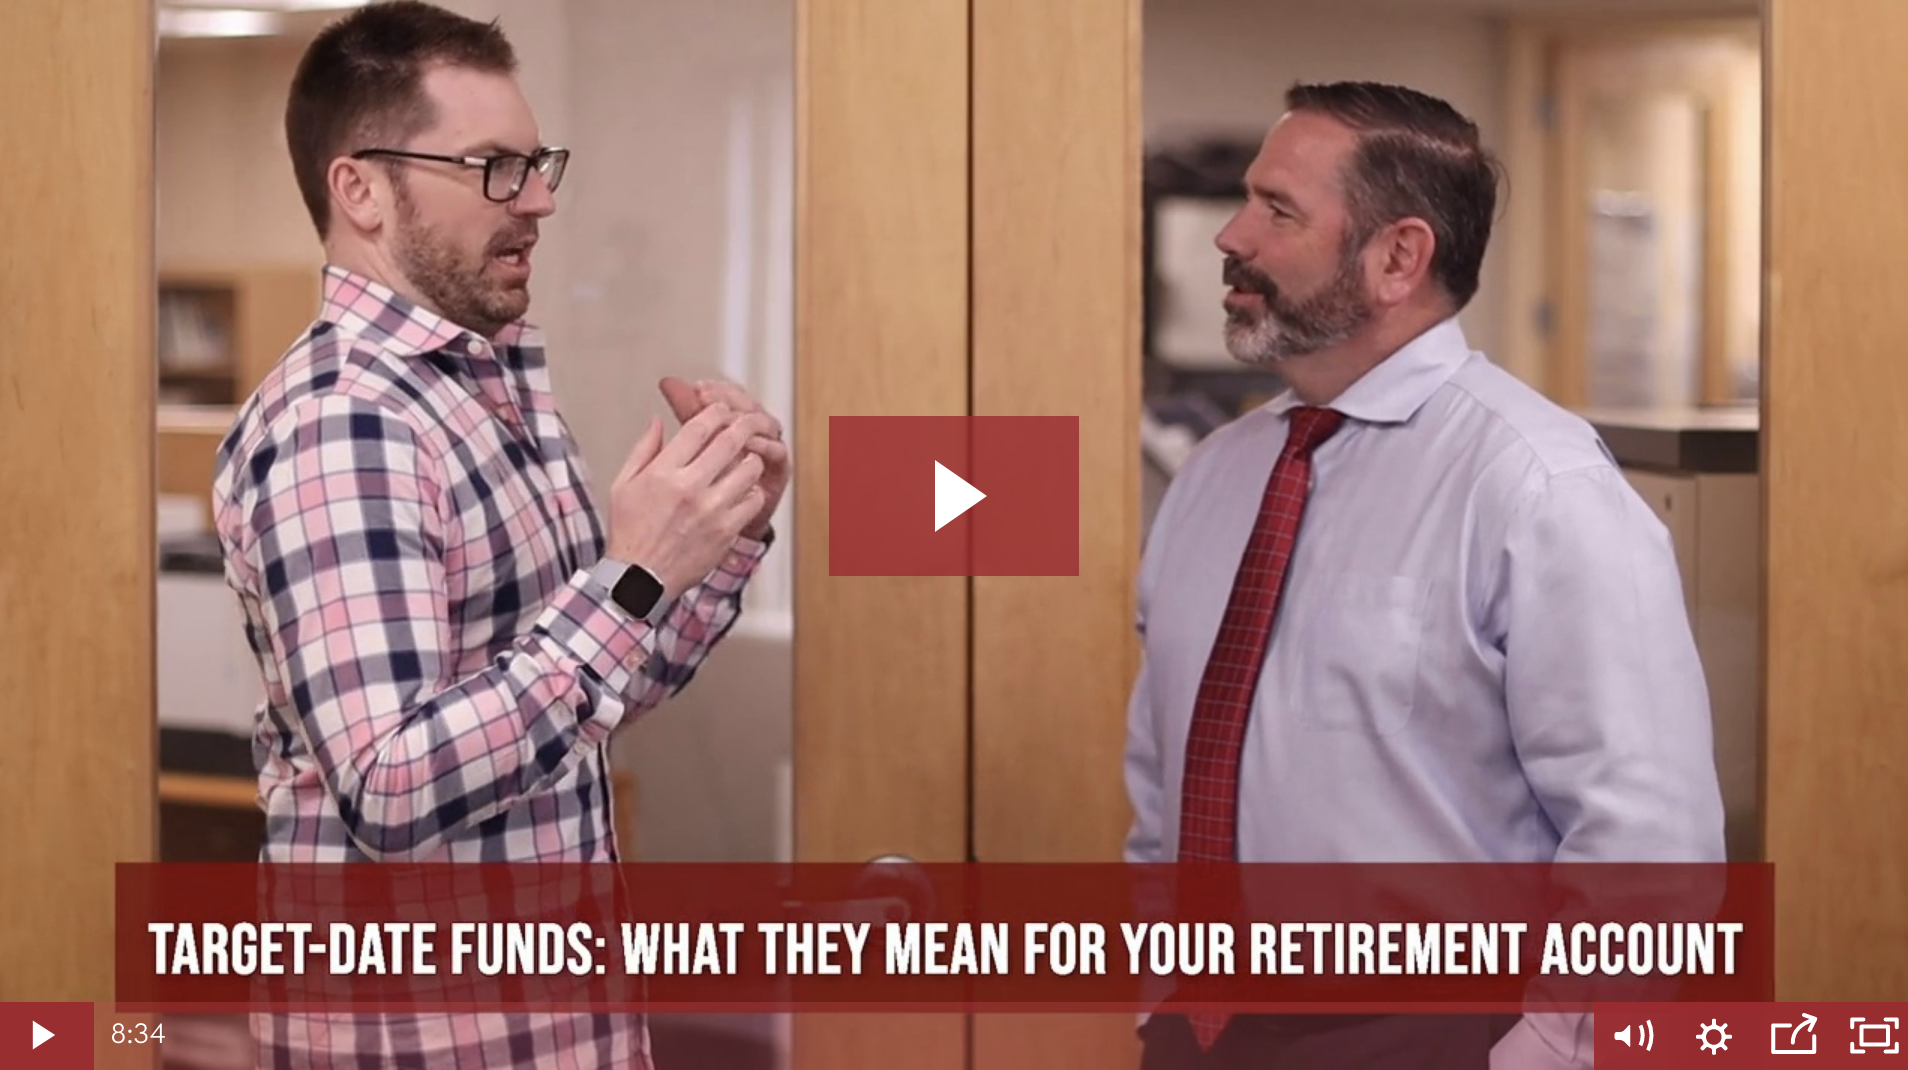 Target-Date Funds& The Role They Play In Your Retirement Accounts